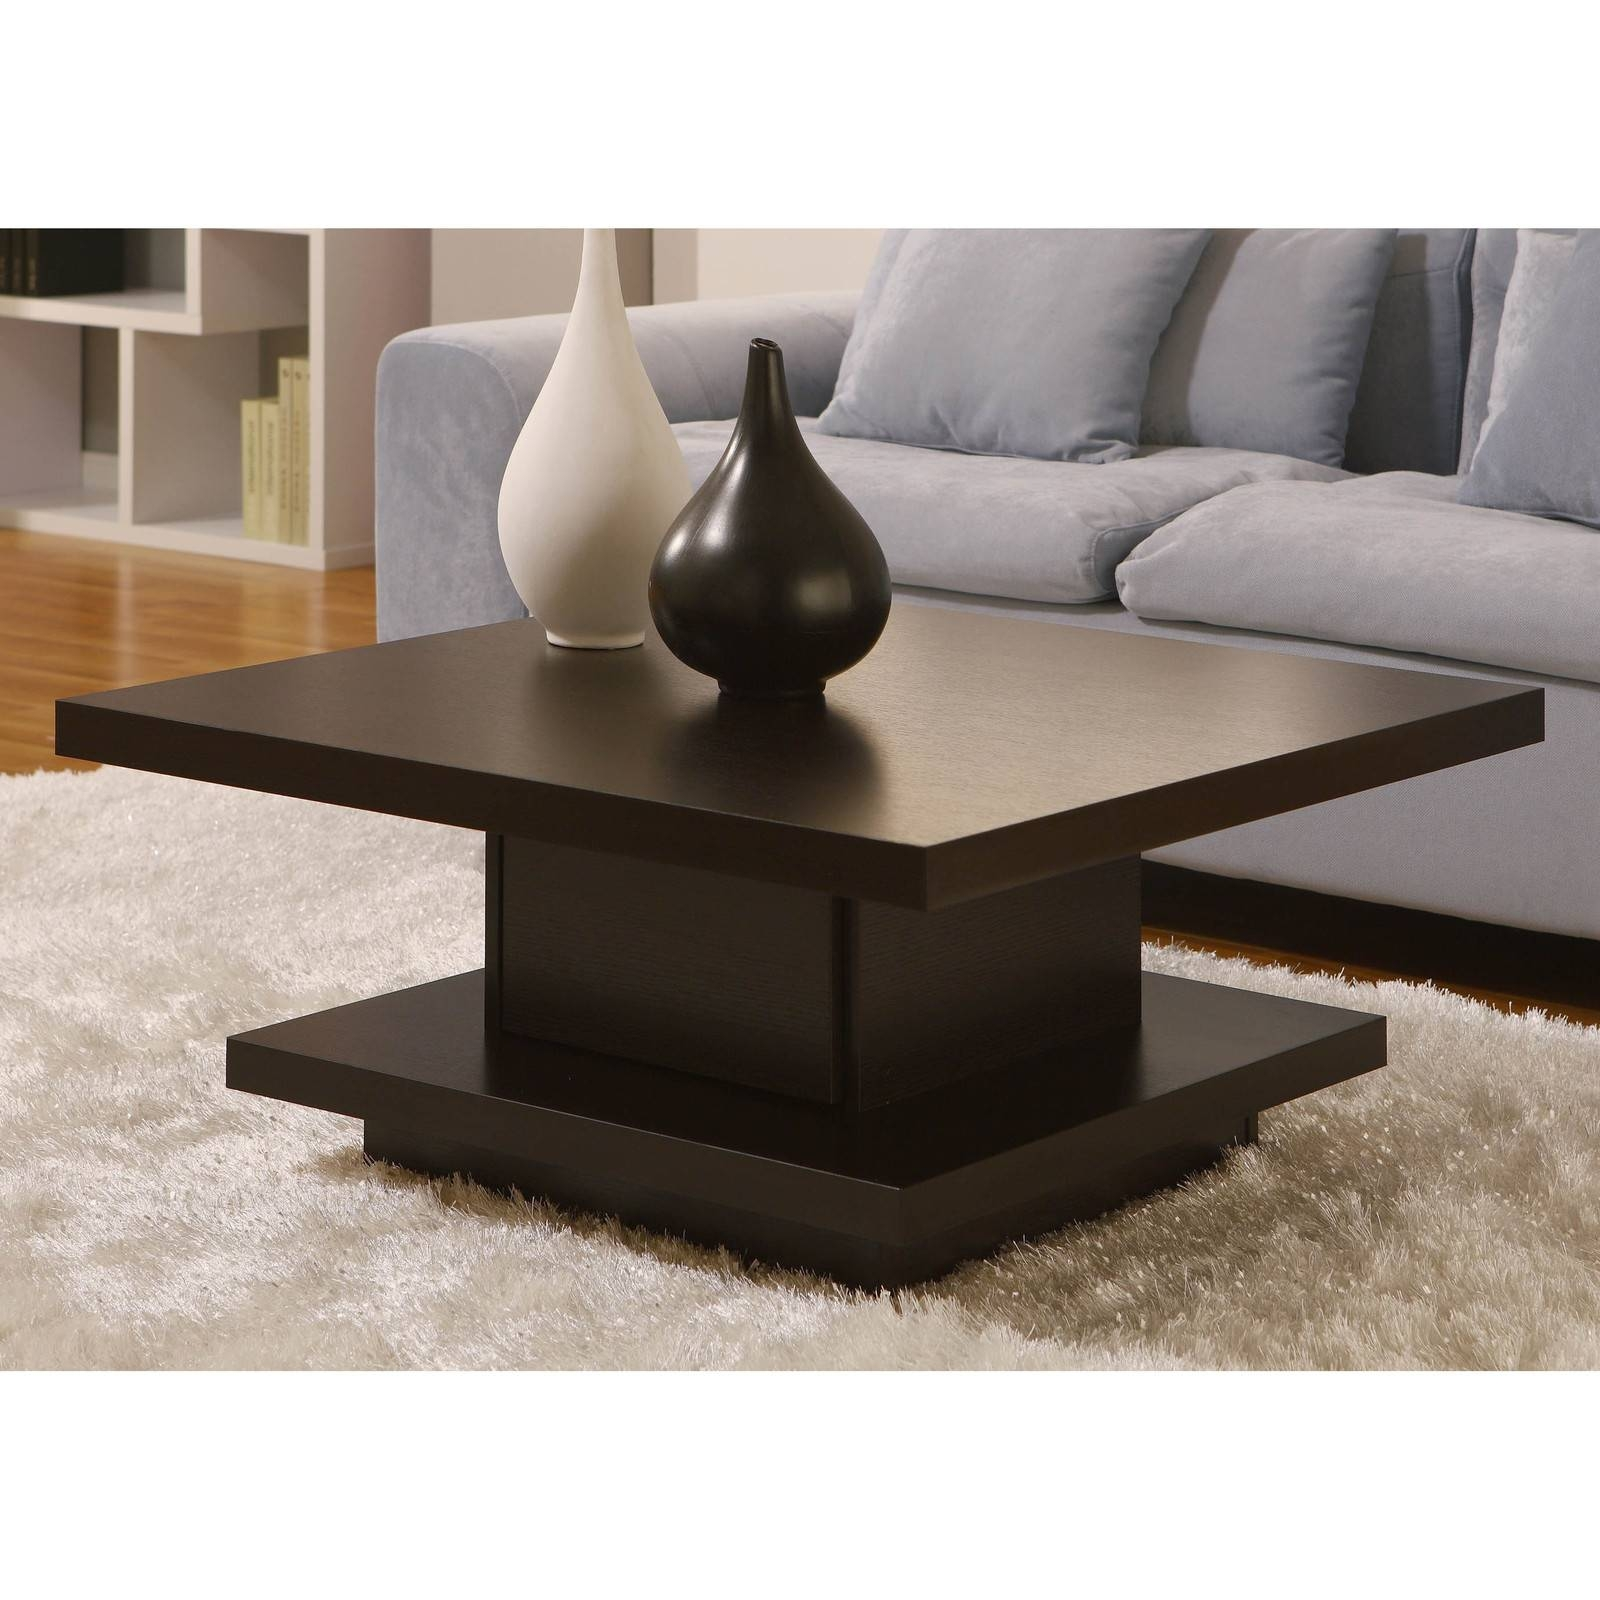 Oak Flat Coffee Tables Contemporary Wooden Coffee Tables Low Level for Square Shaped Coffee Tables (Image 20 of 30)